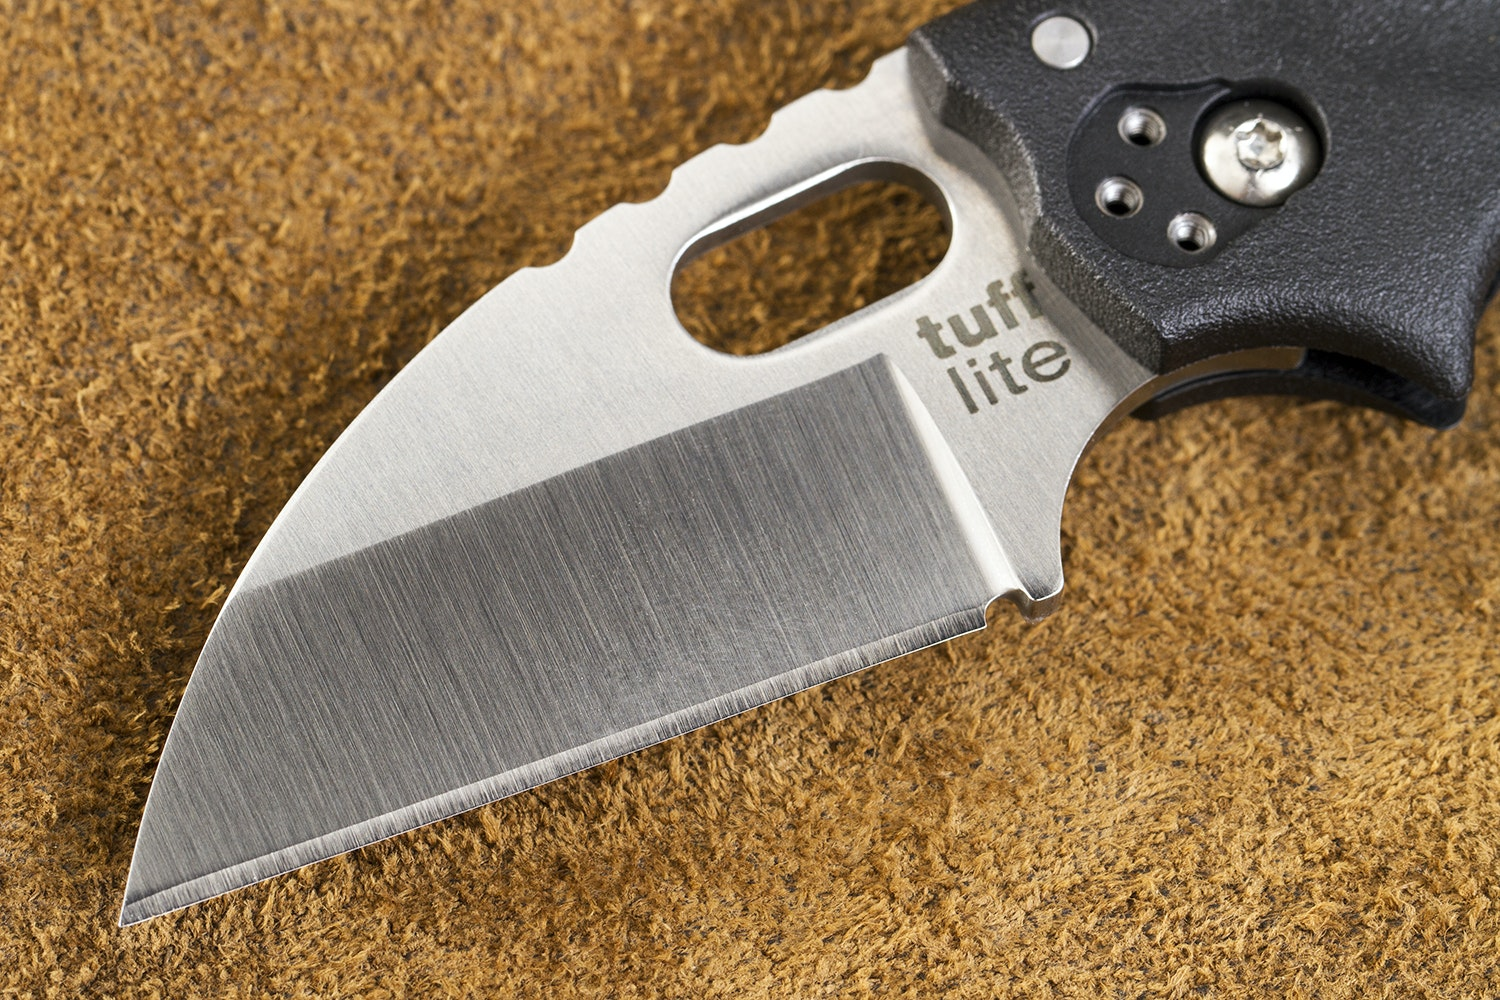 Cold Steel Tuff Lite Knife